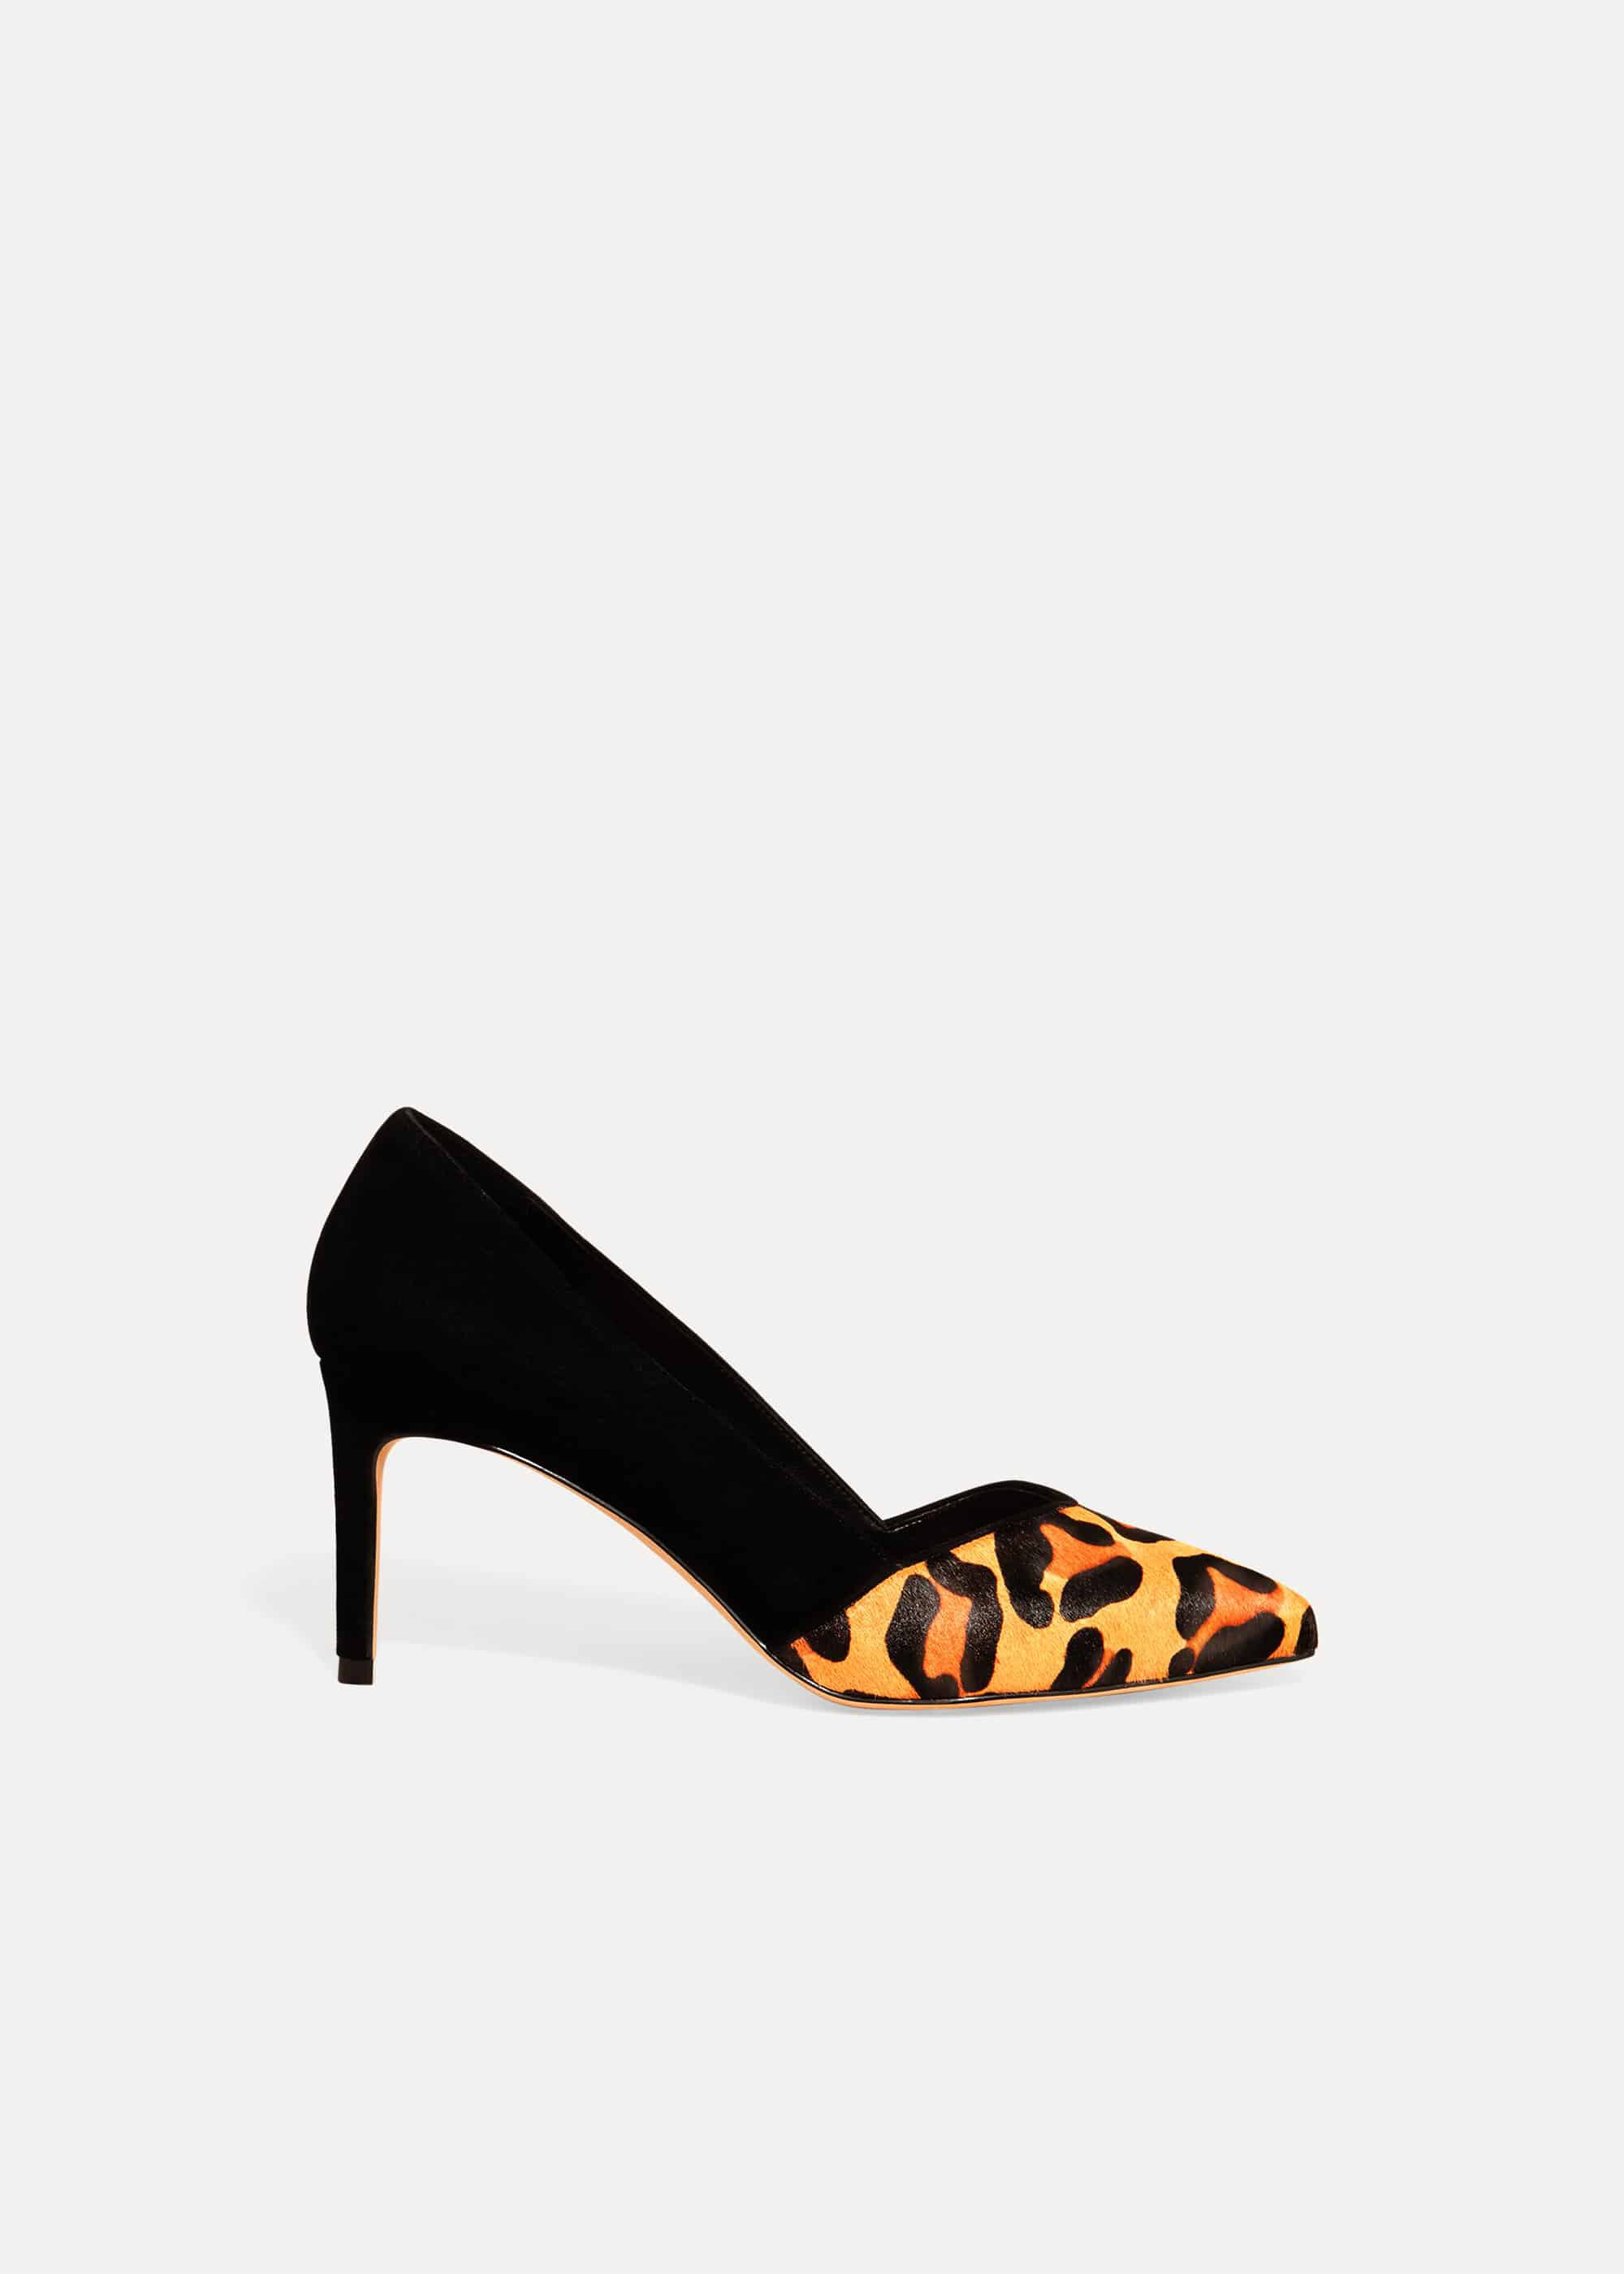 Phase Eight Lo Leopard Print Shoe, Multicoloured, High Heels